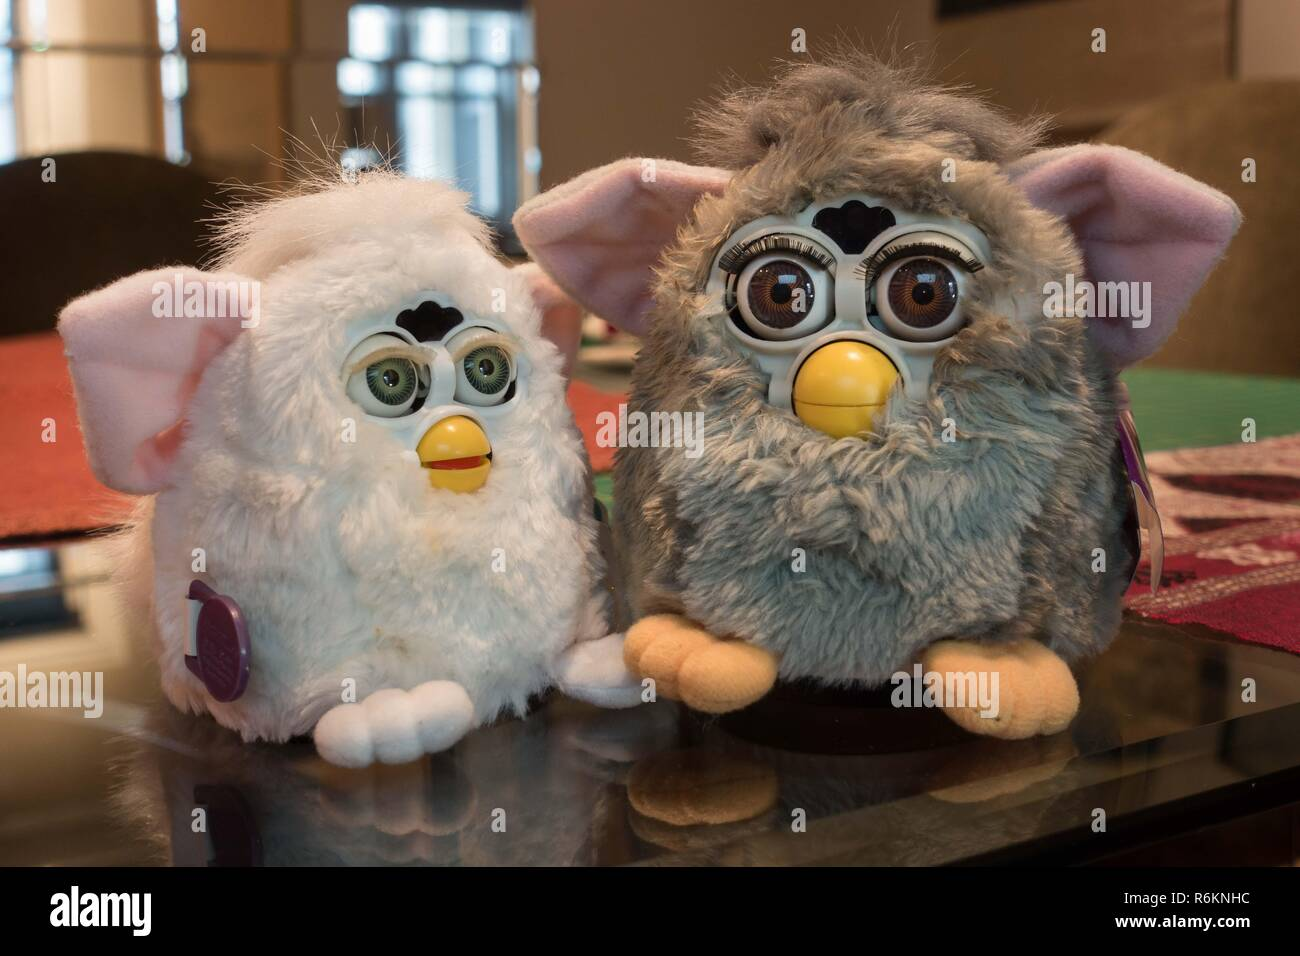 Original Furby and Furby baby (white), must-have intelligent speaking toys from 1998 and 1999 (baby), made by Tiger electronics, await conversation. - Stock Image